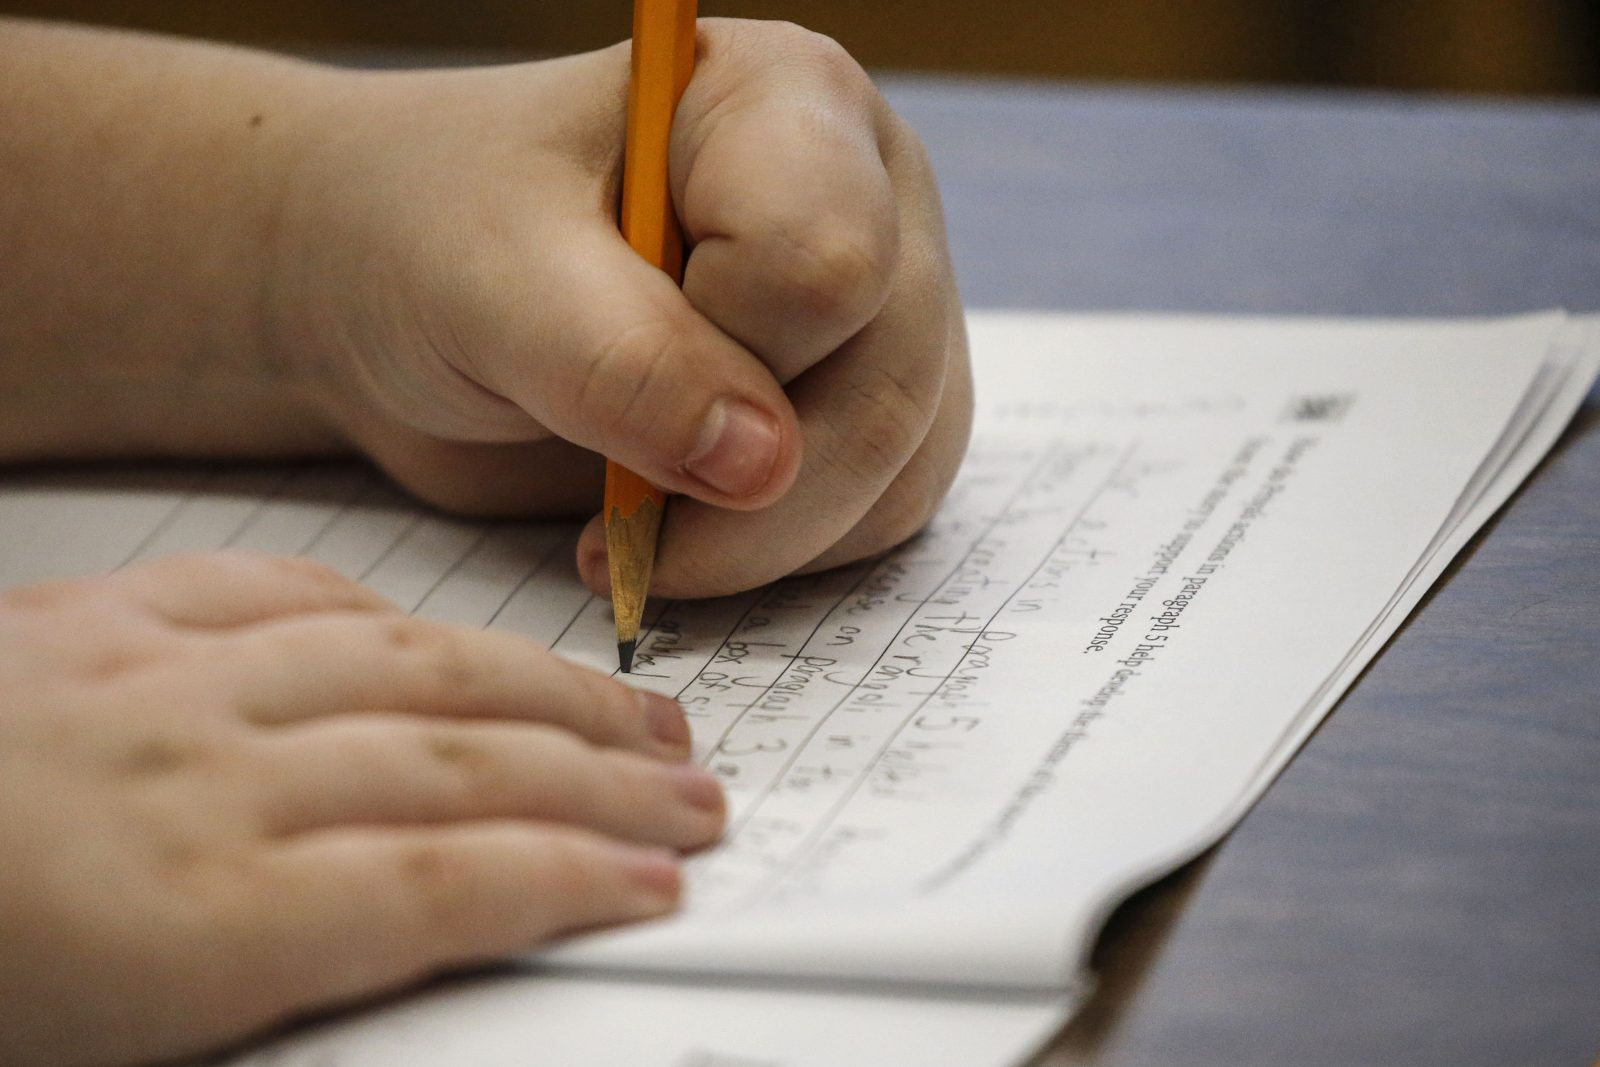 49a9bd1d6d New York lawmakers end mandate tying teacher evaluations to student test  scores